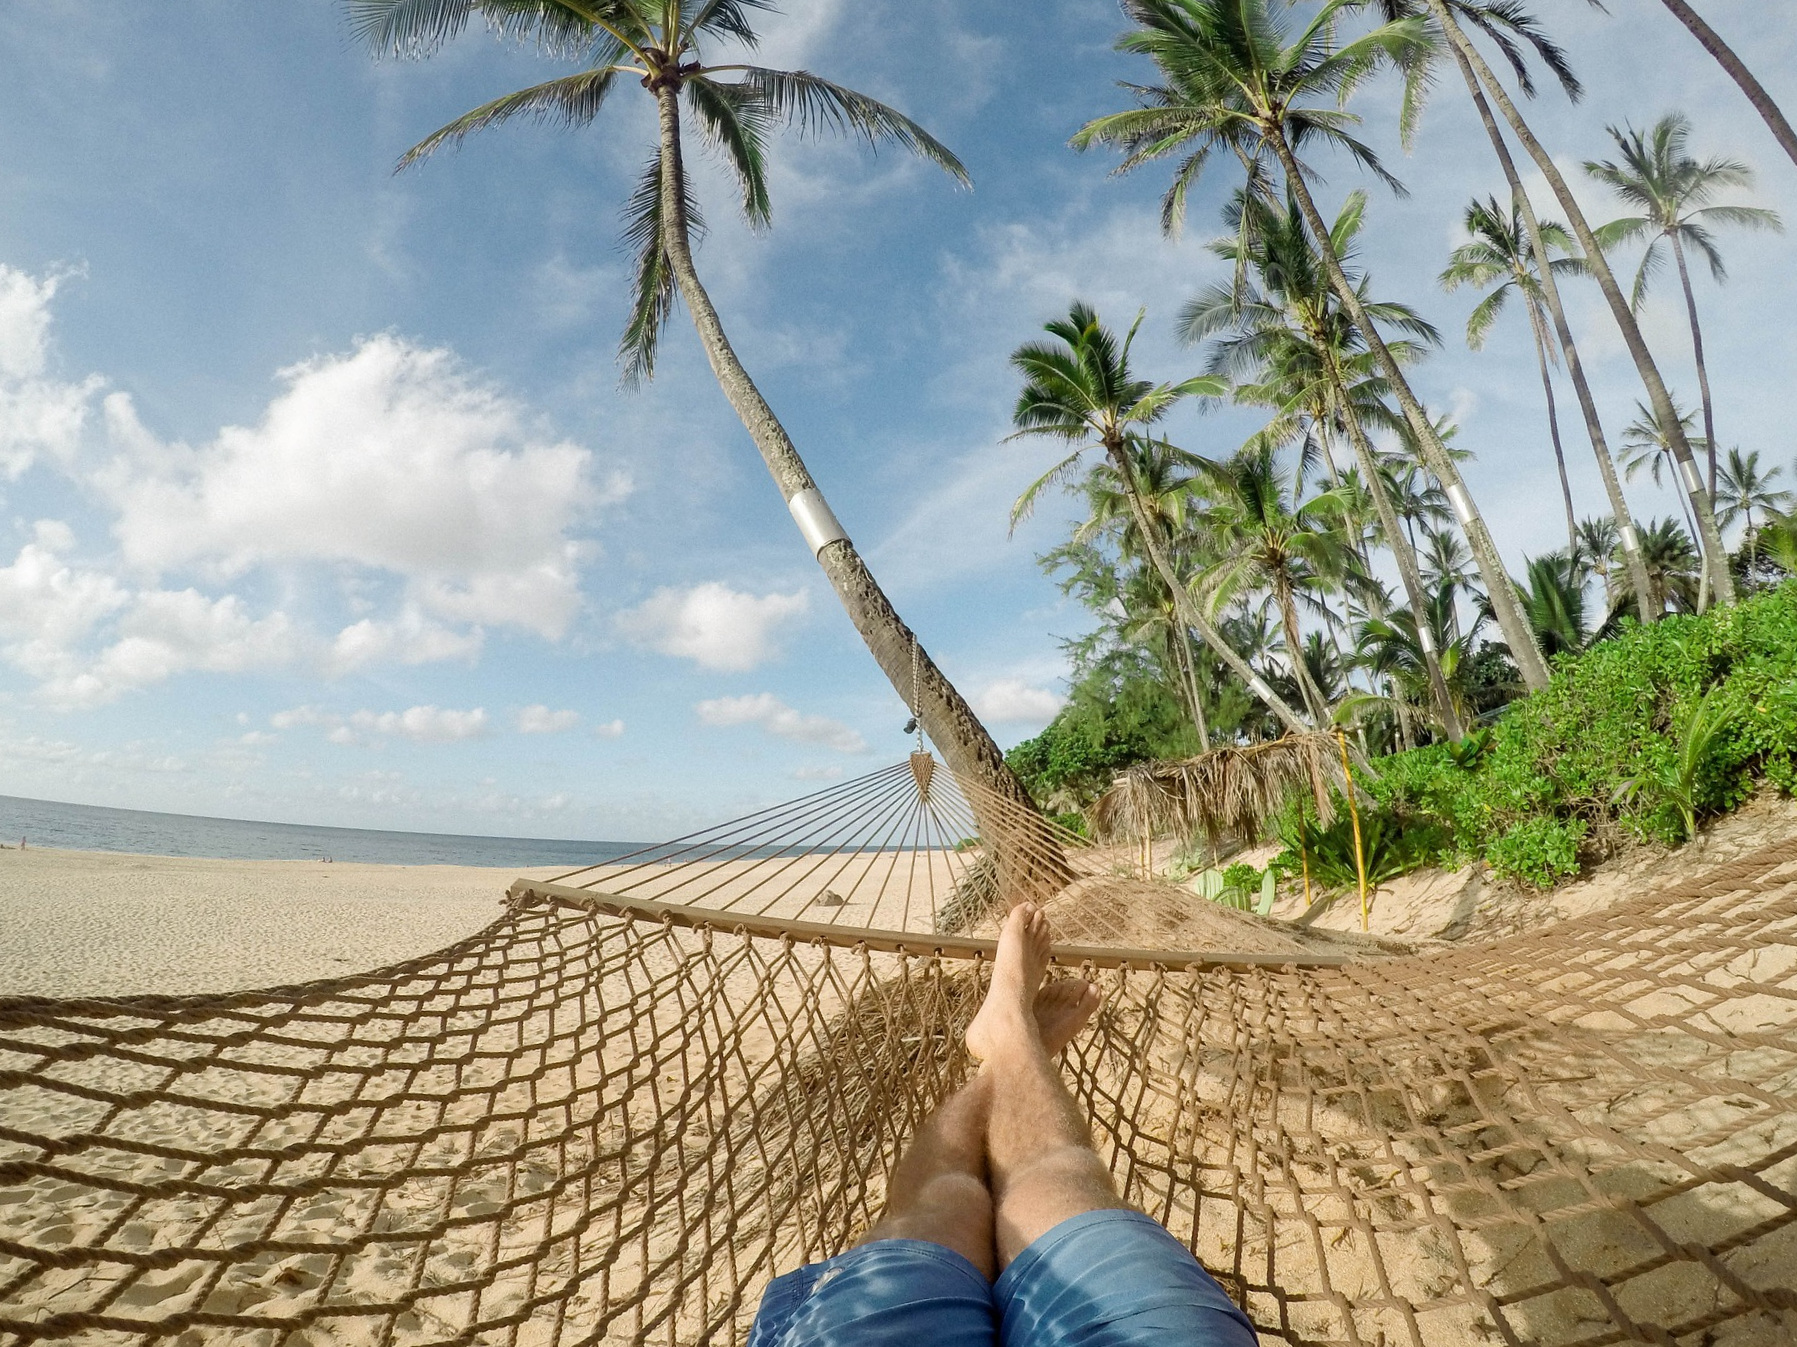 - To the hammock vision: add noticing your soft breath, any feelings that arise, a light breeze on your skin and your hair blowing in the same direction as the breeze.